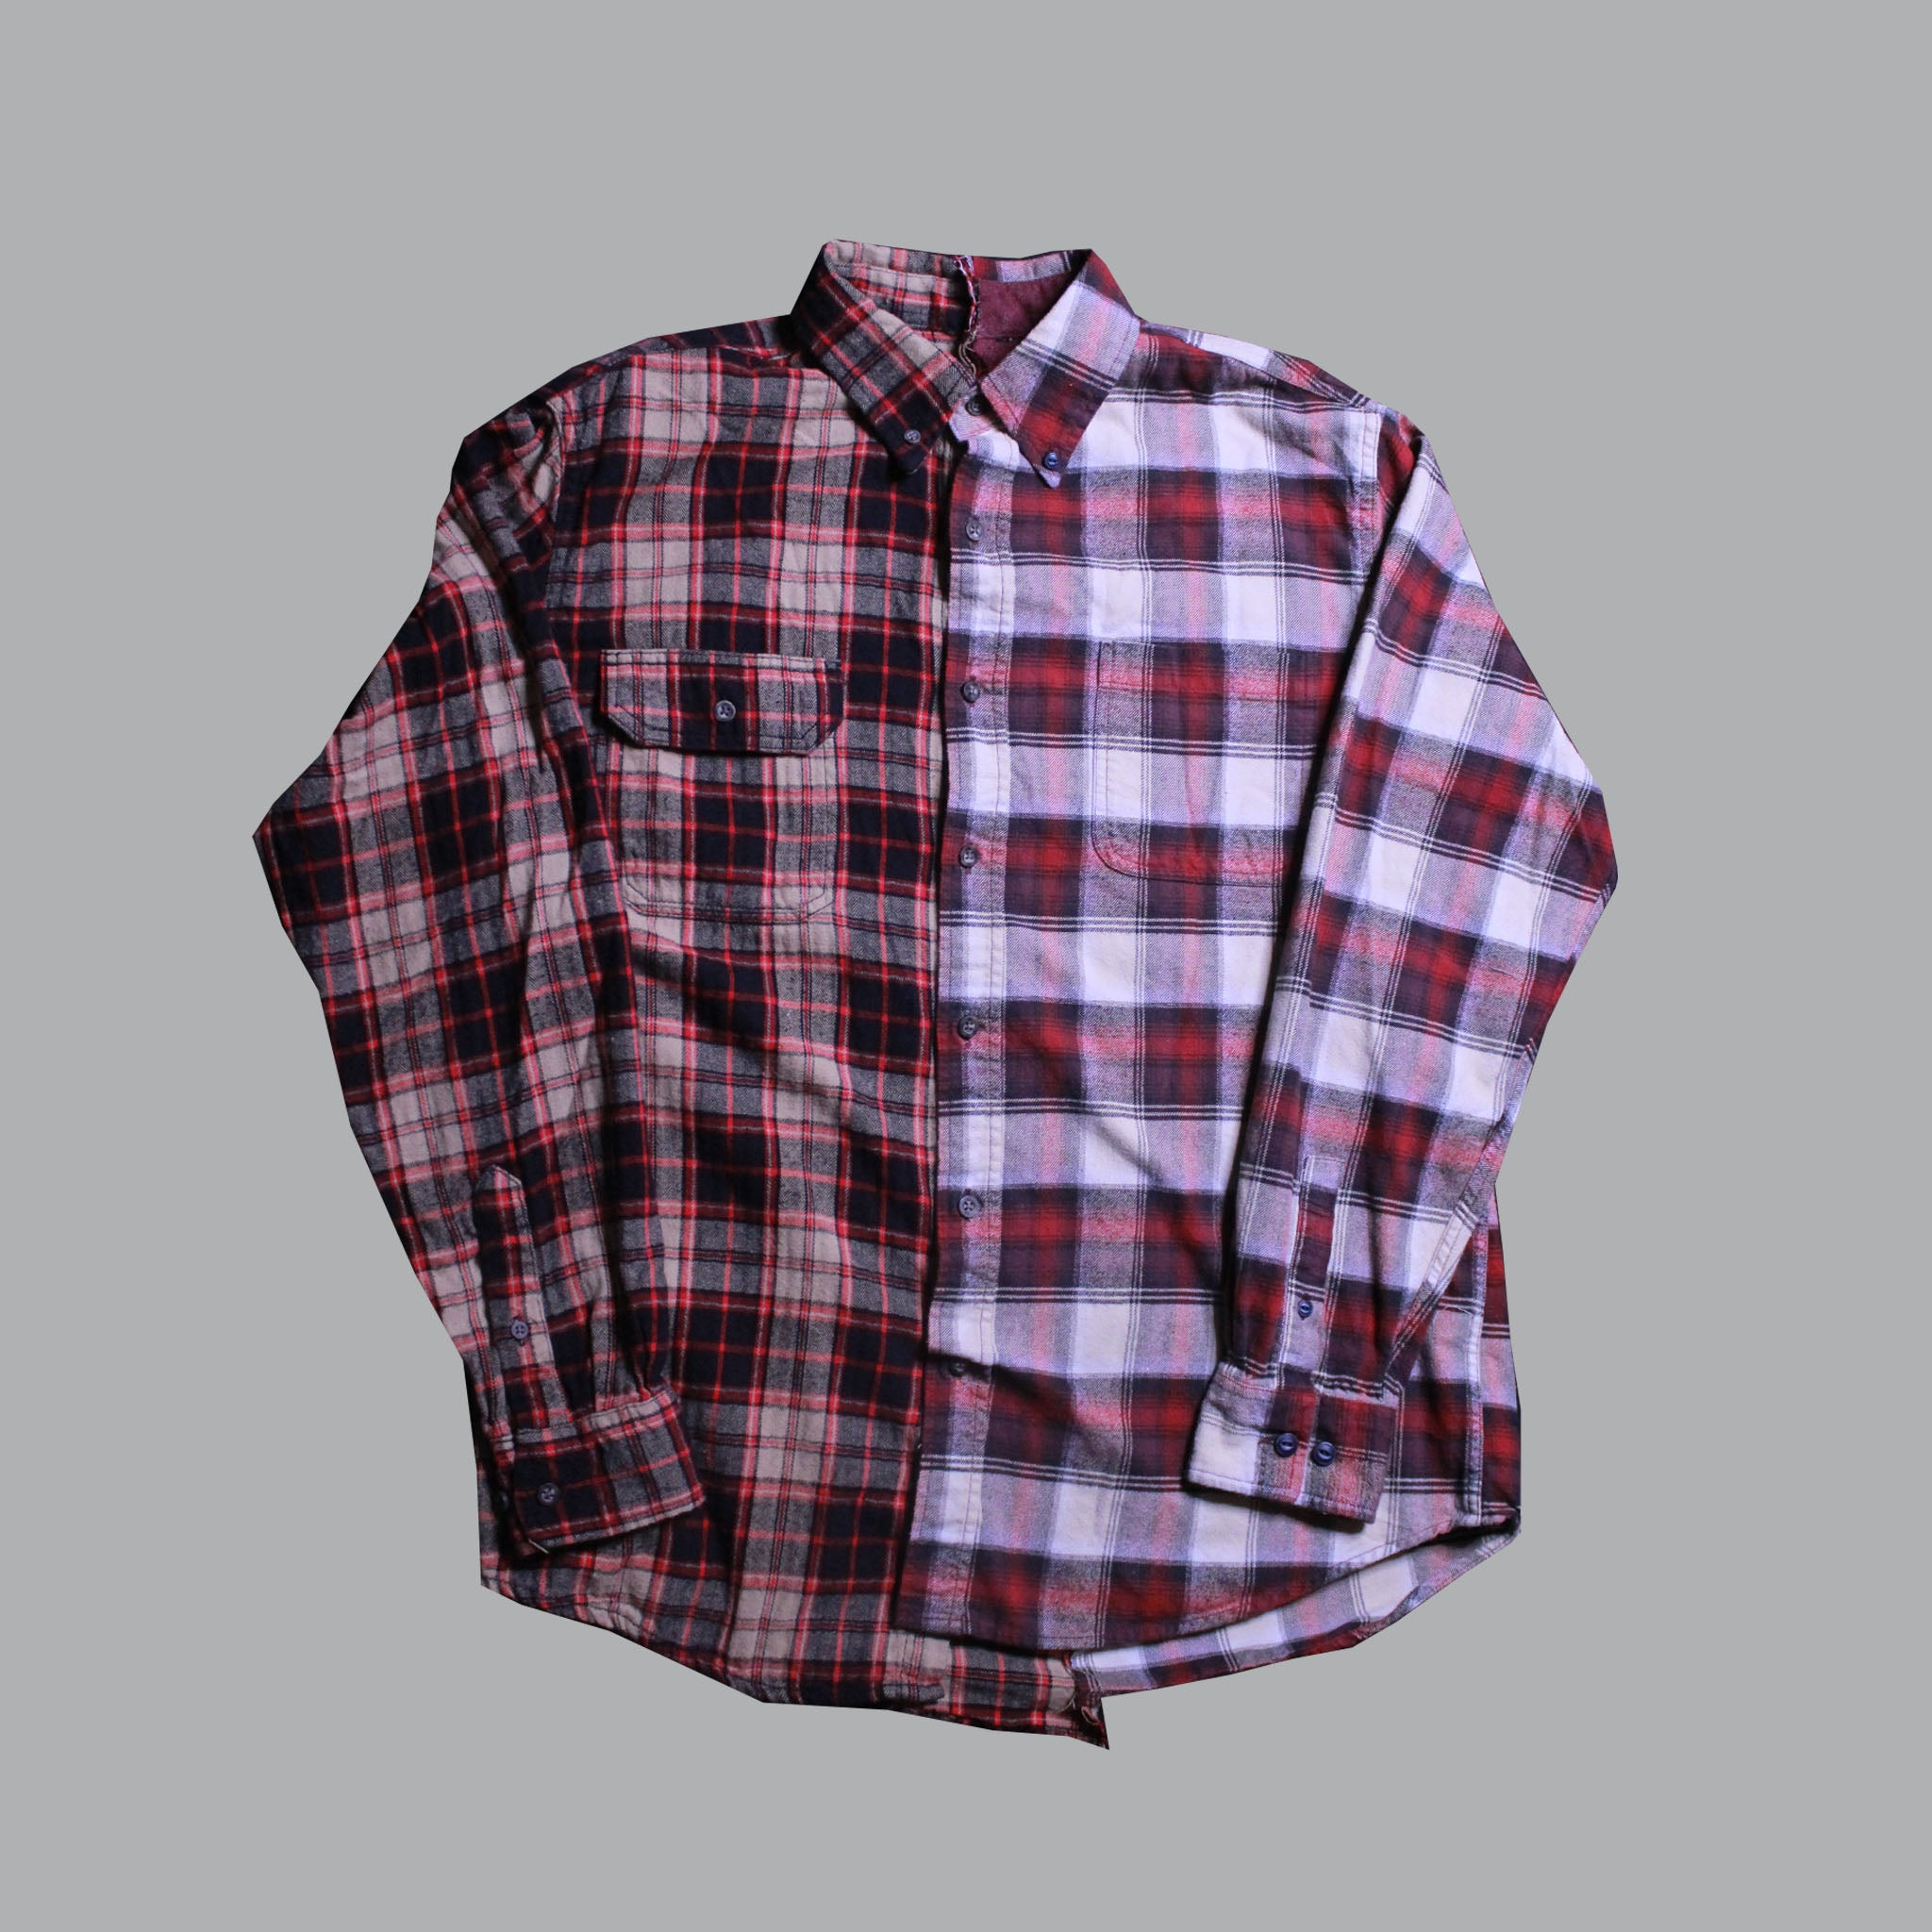 OTW Two Tone Red Brown Plaid Shirt